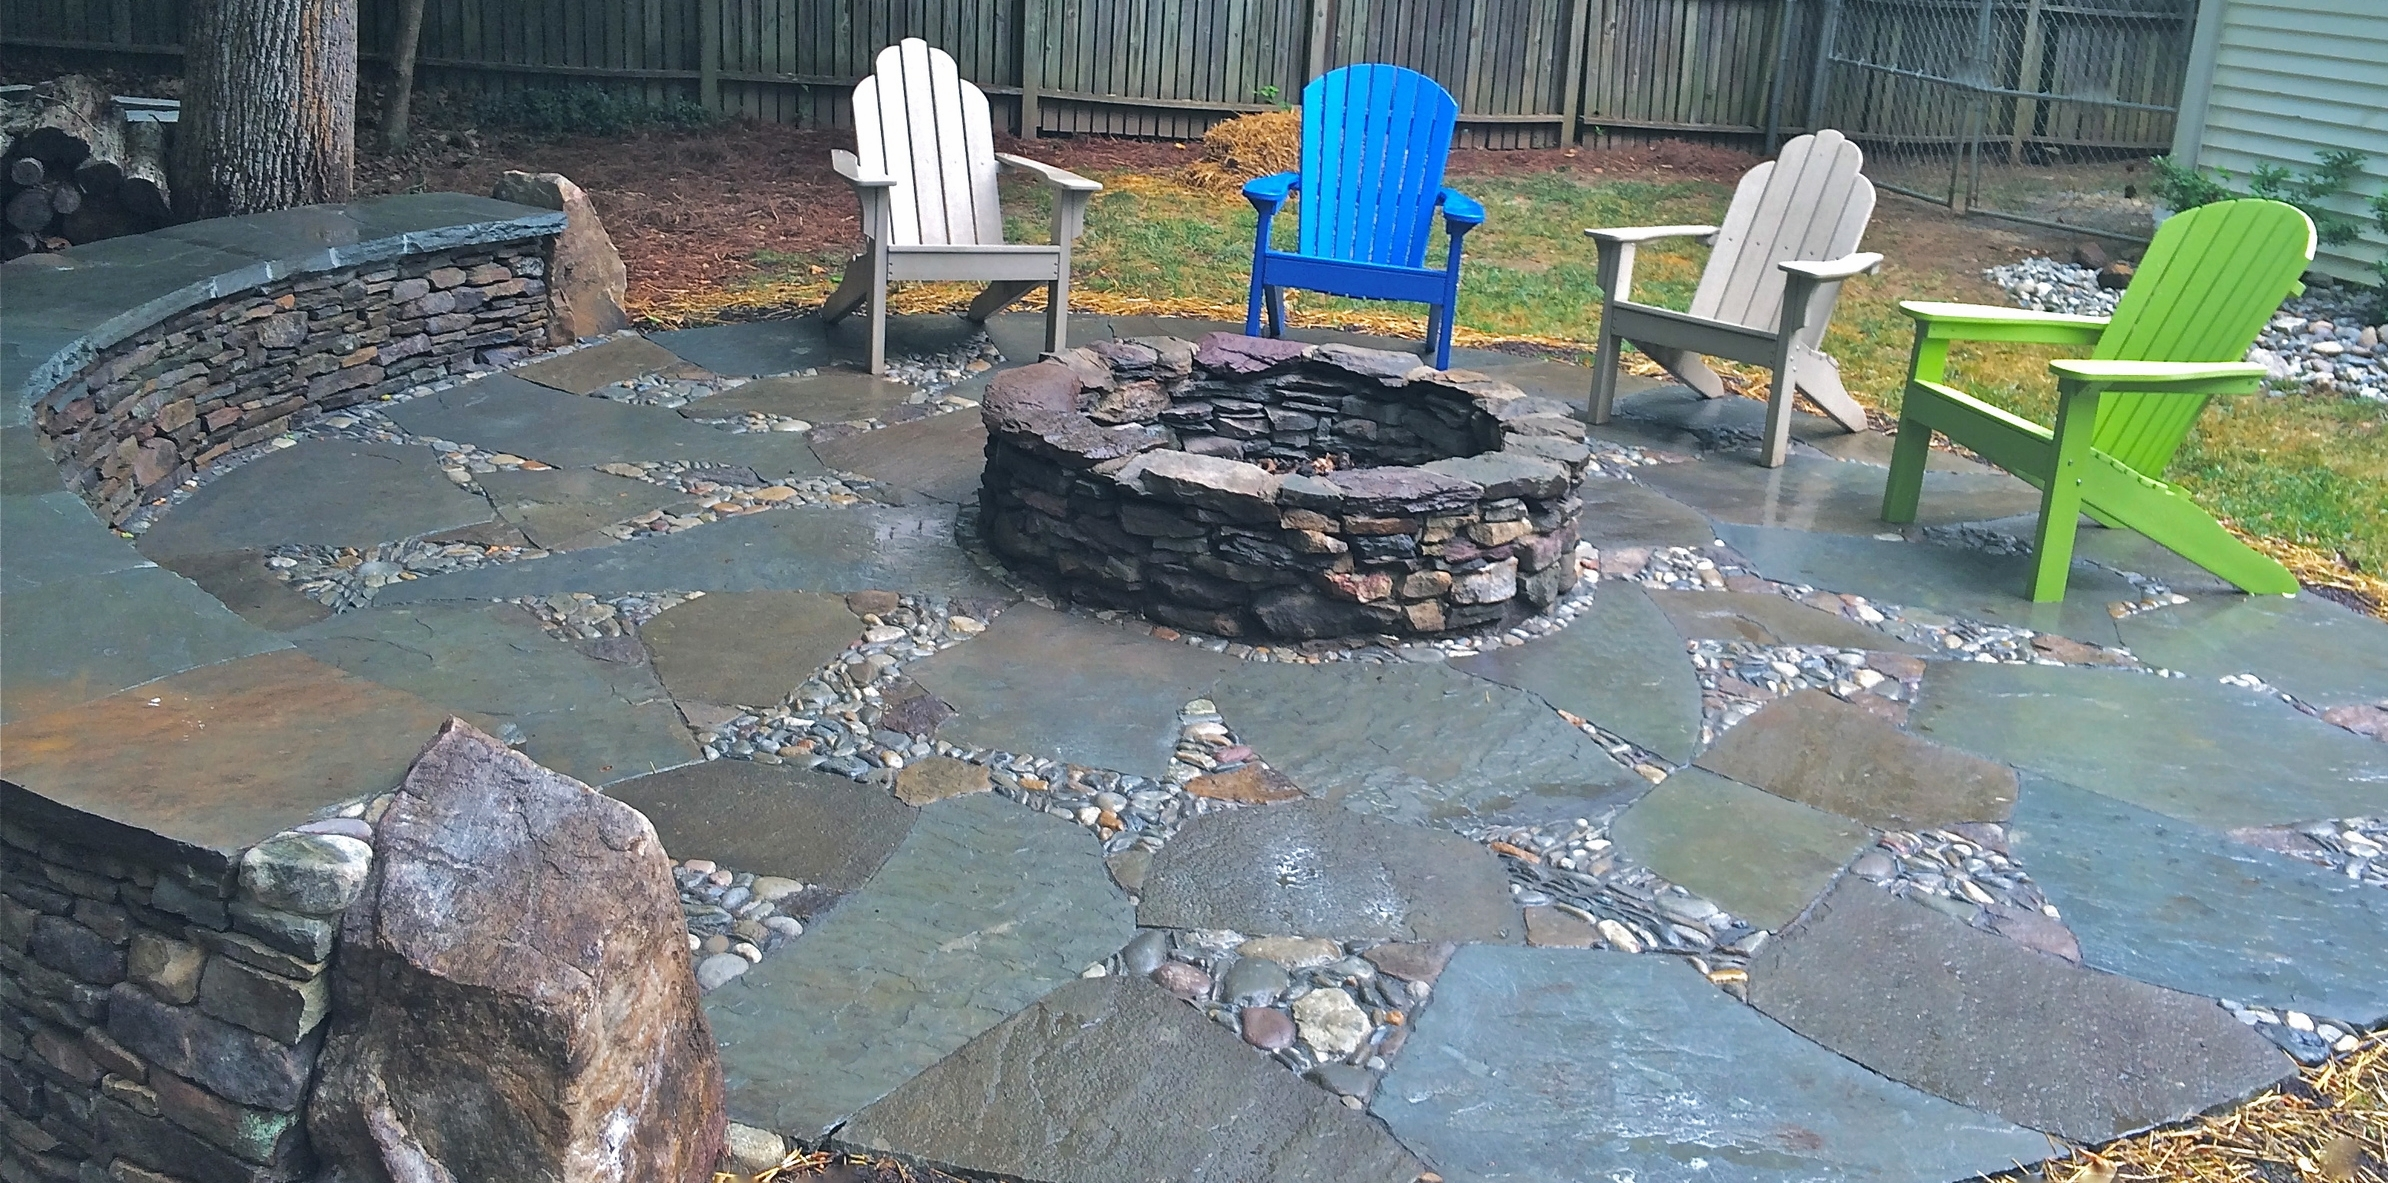 Dry laid flagstone patio and wall surround an existing fire pit